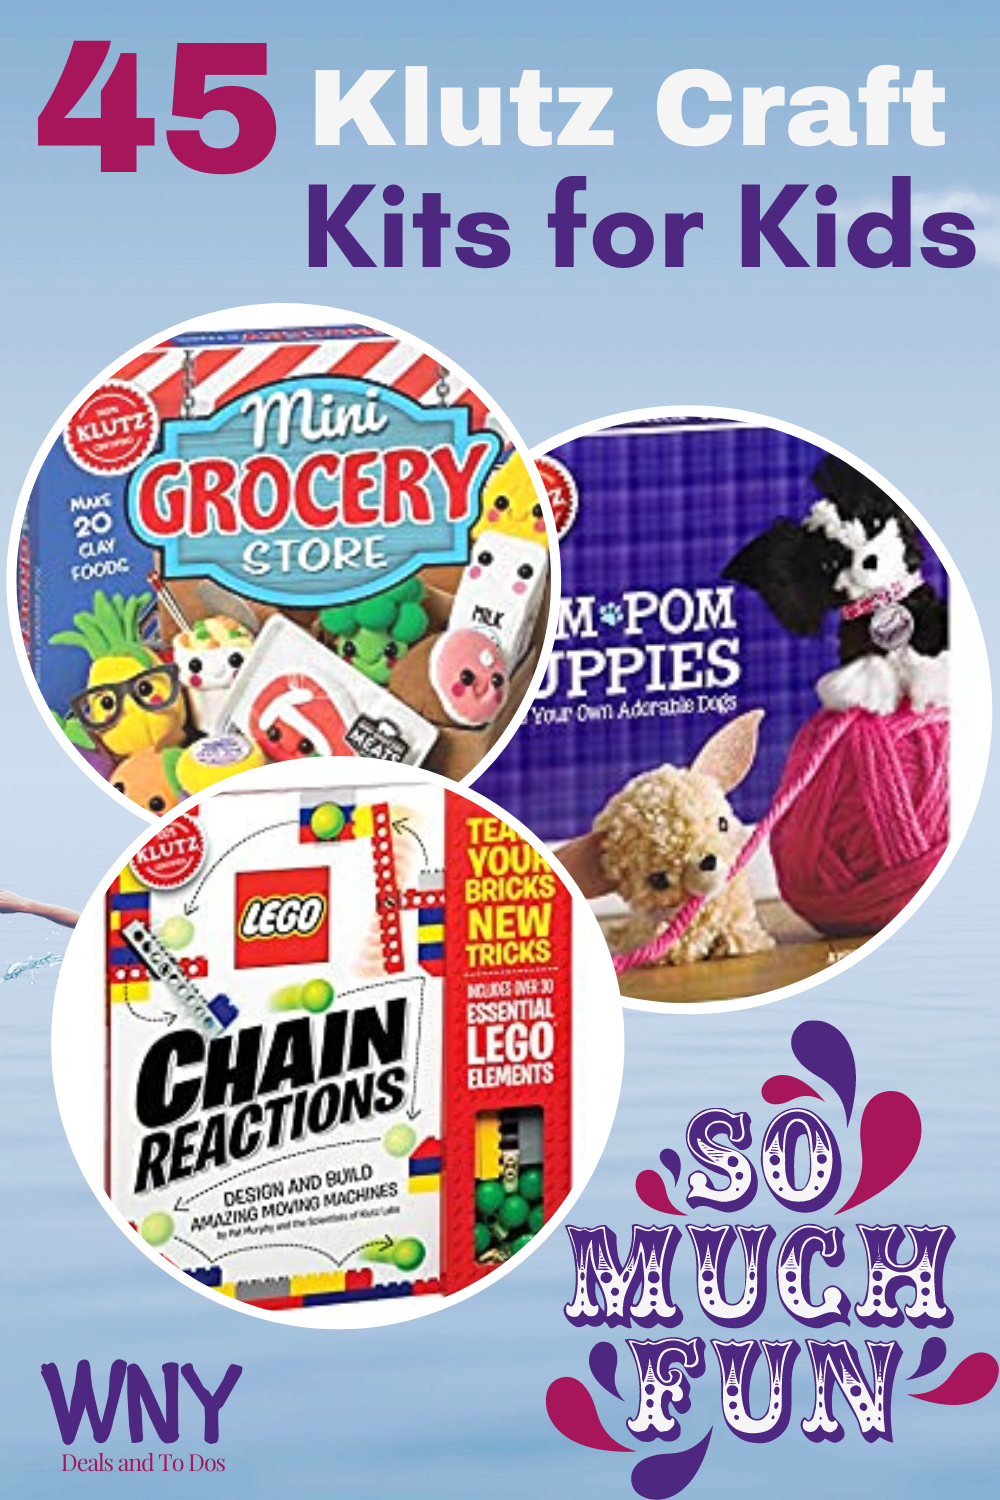 These Klutz Craft Kits are a fun way to keep the kids entertained and get their creative juices flowing; no batteries required!